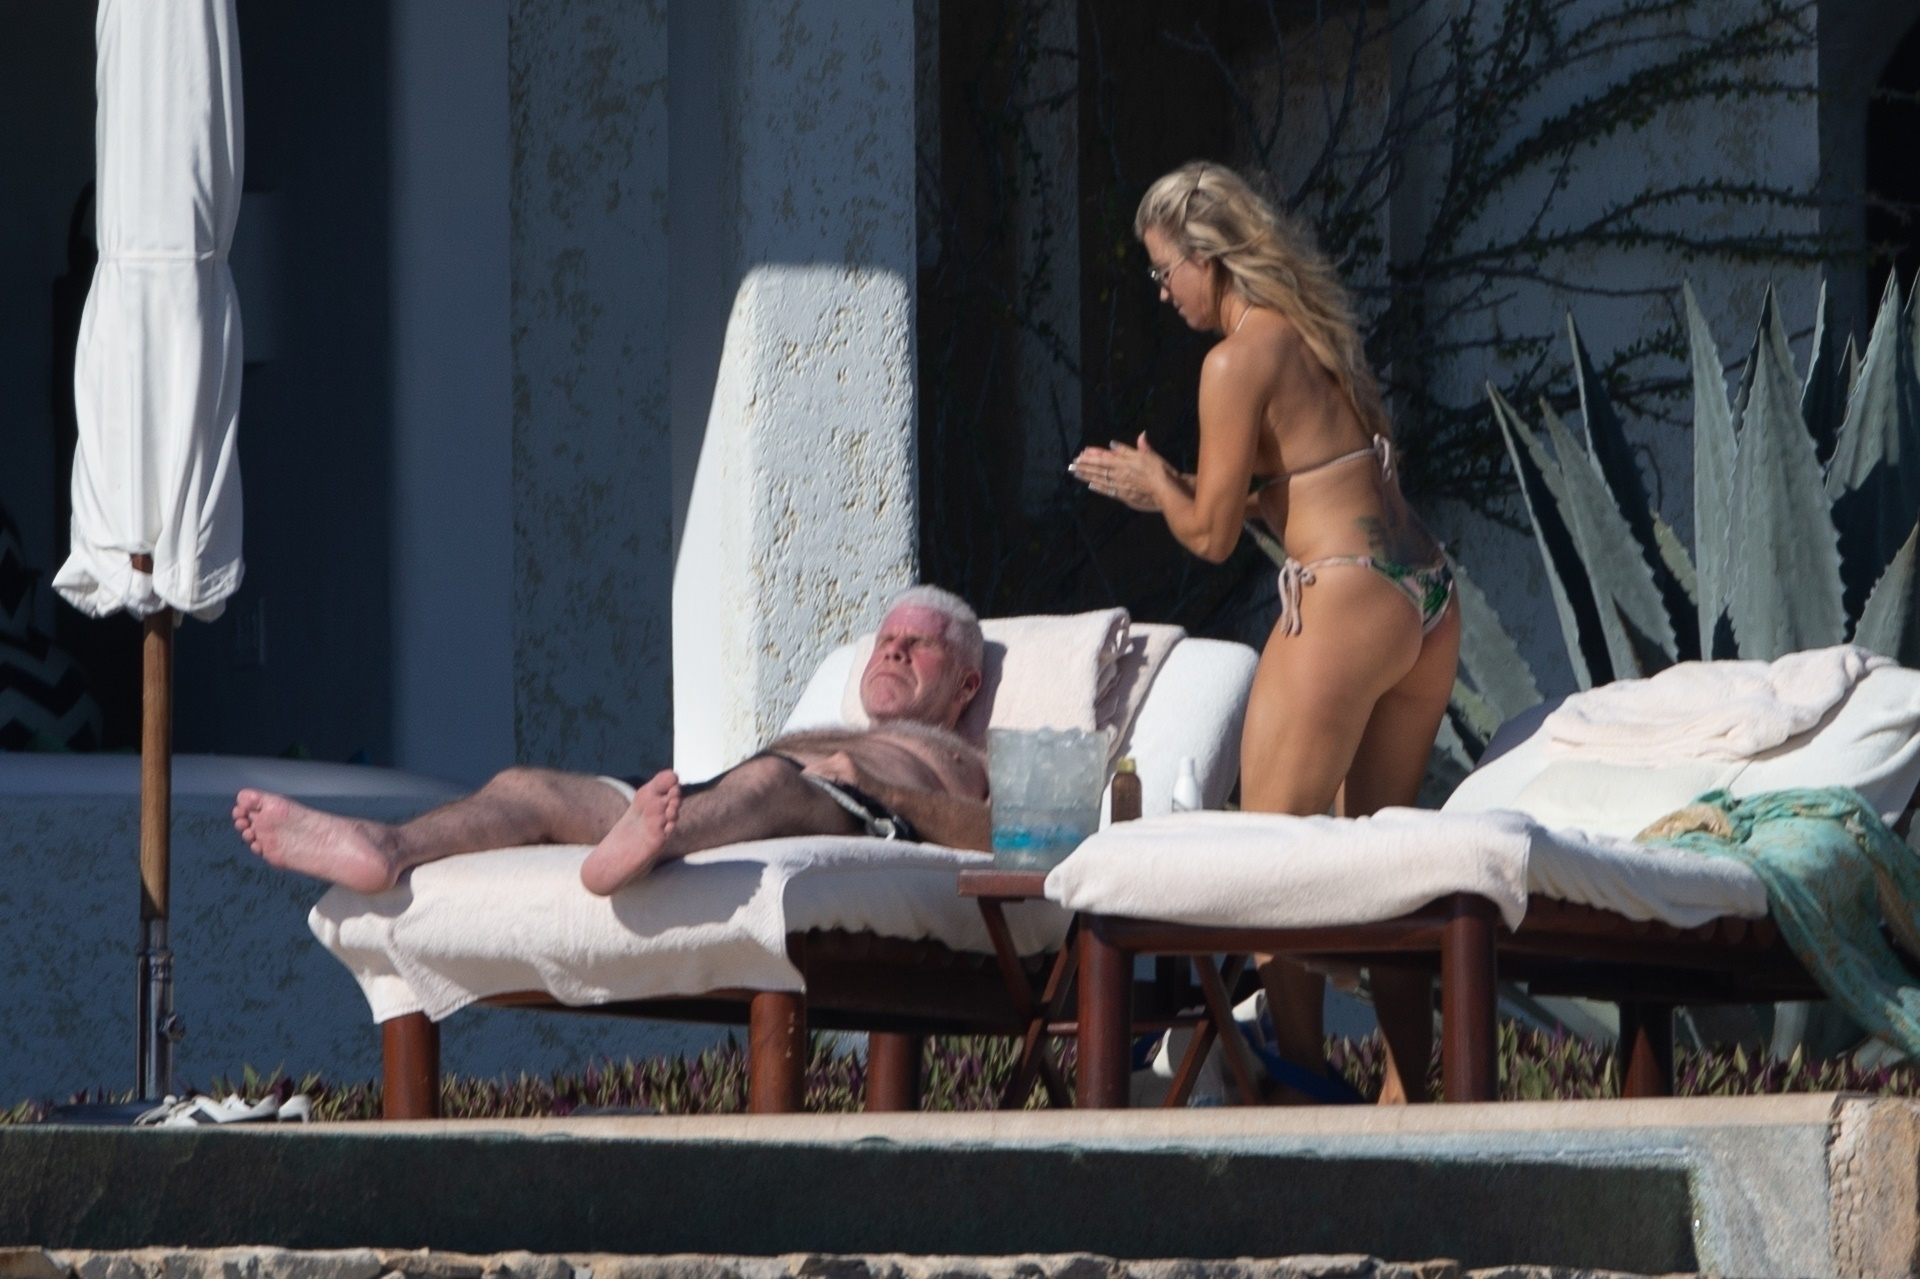 Cabo San Lucas, MEXICO  - *PREMIUM-EXCLUSIVE*  -  *Web Embargo until 4pm PST on December 17, 2019* Actor Ron Perlman is spotted kicking back in Mexico with new girlfriend Allison Dunbar just weeks after filing for divorce from his wife of 38 years. The 69 year old 'Hellboy' star was seen kicking back on a beach lounger as Allison rubbed him down with sunscreen. Perlman filed for divorce  in early November just 5 months after he was pictured kissing his 'StartUp' co-star outside of a steakhouse in Pasadena.  Dunbar put her amazing bikini body on display during their day out under the sun in a tropical print two piece. Perlman, smiling,  certainly seemed to take notice of how great she looked. *Shot on December 14, 2019*  BACKGRID USA 17 DECEMBER 2019, Image: 488614891, License: Rights-managed, Restrictions: , Model Release: no, Credit line: HEM / BACKGRID / Backgrid USA / Profimedia